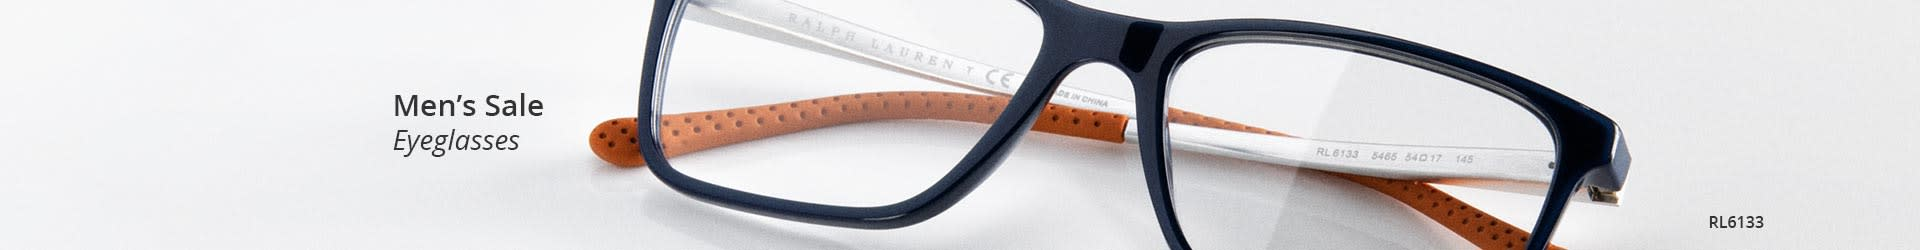 Men's Eyeglasses Sale